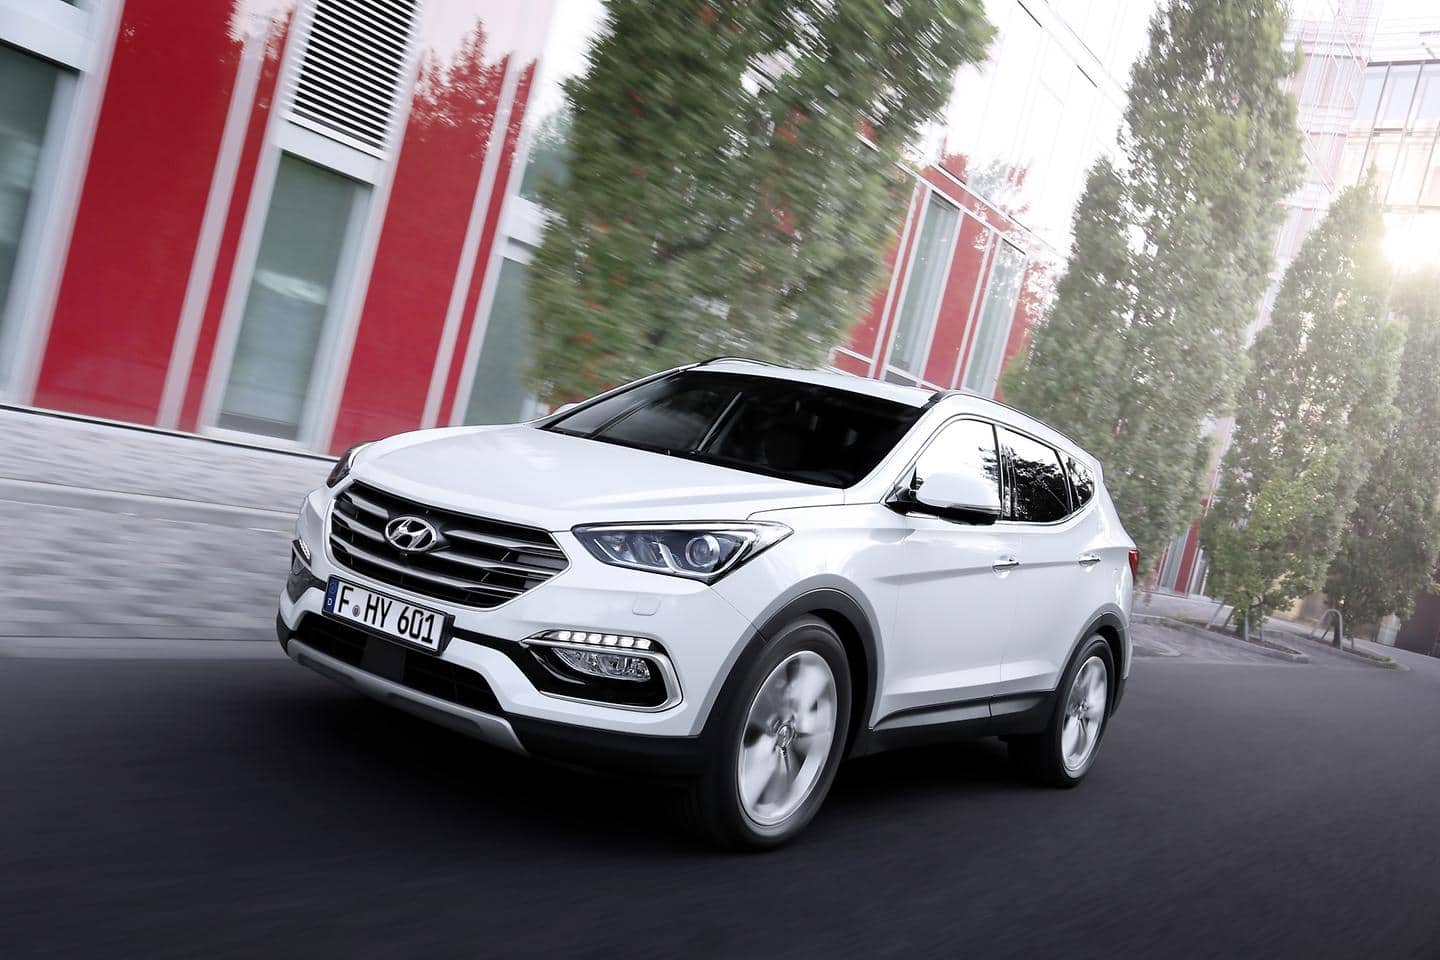 New Santa Fe: A refined and innovative SUV package